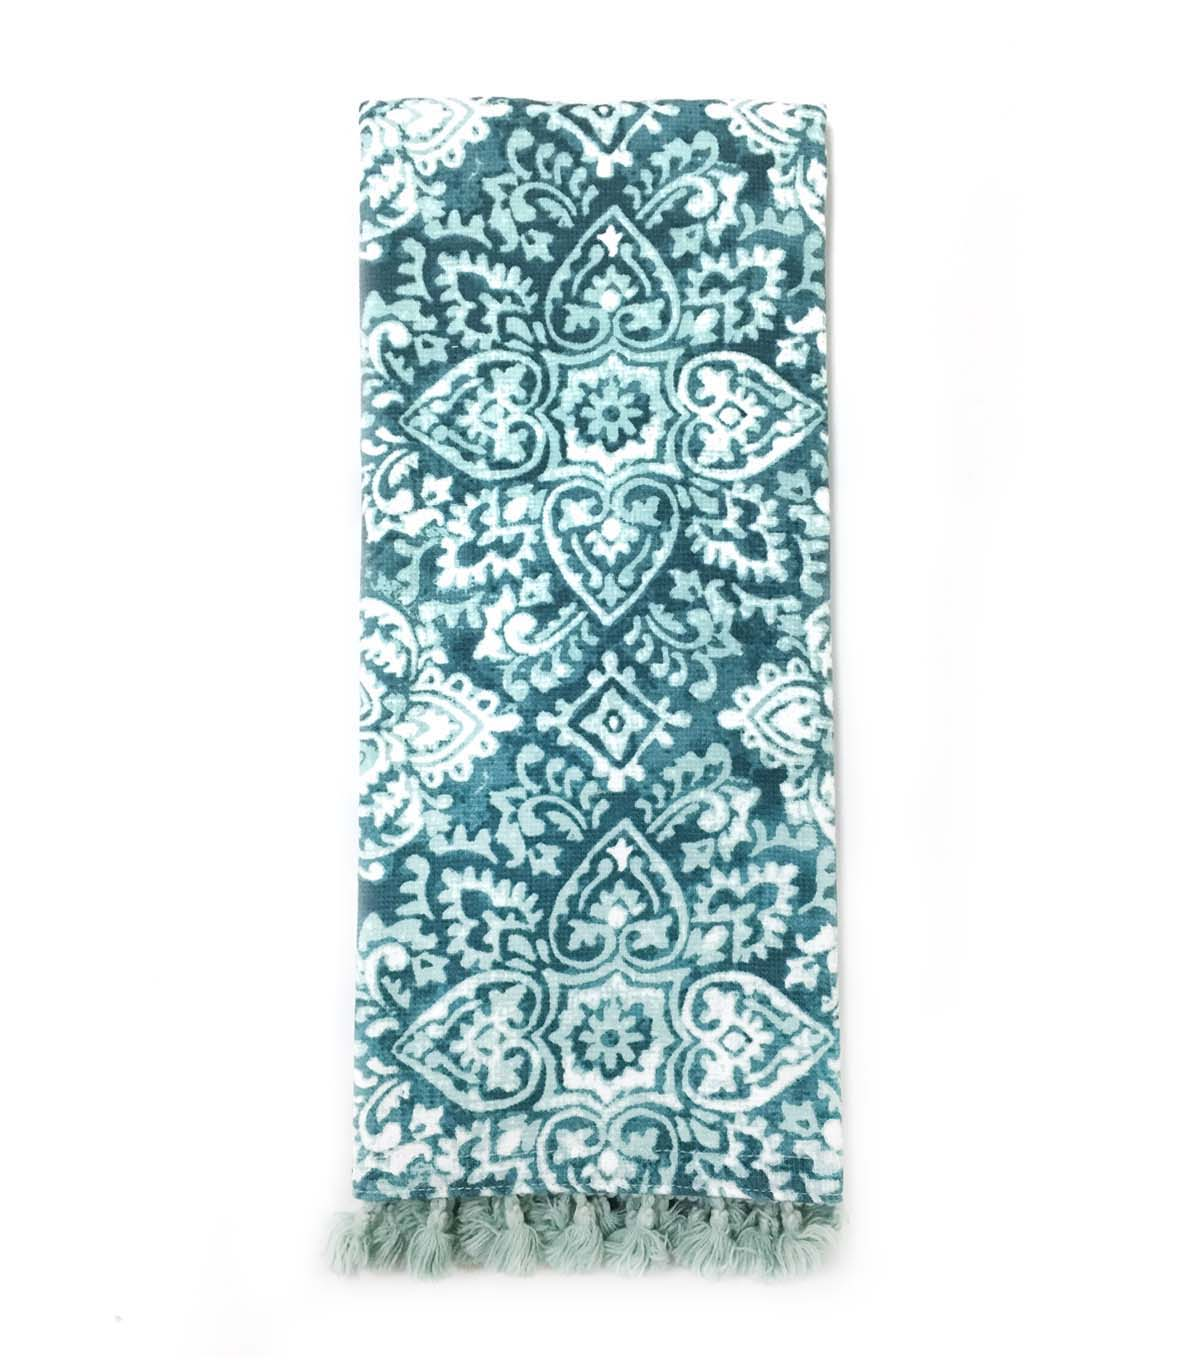 Hudson 43 Pure 16\u0027\u0027x28\u0027\u0027 French Terry Towel-Blue Print